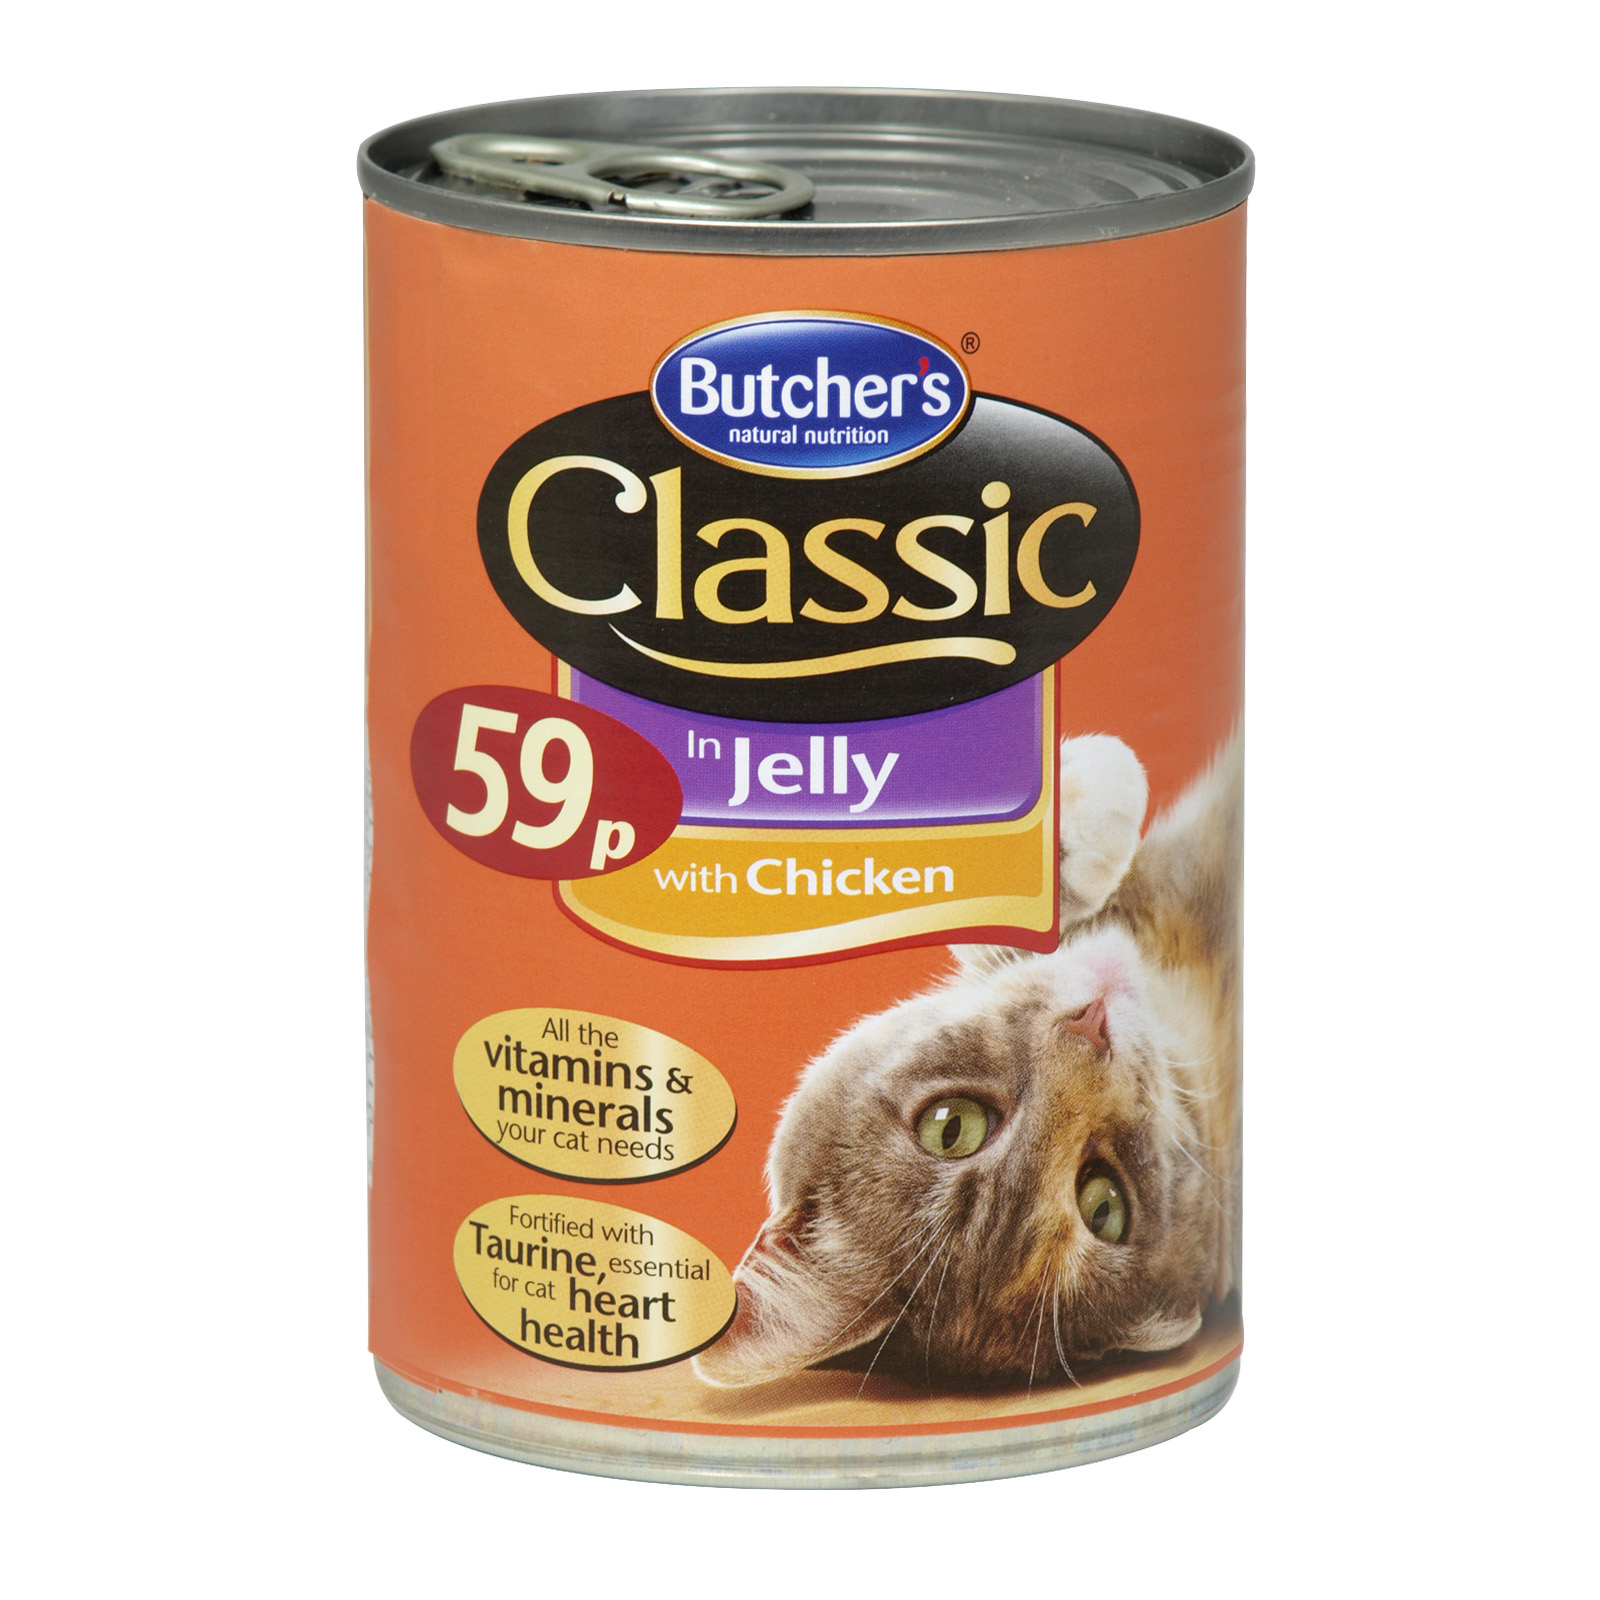 BUTCHERS CLASSIC CHICKEN CAT FOOD 59P